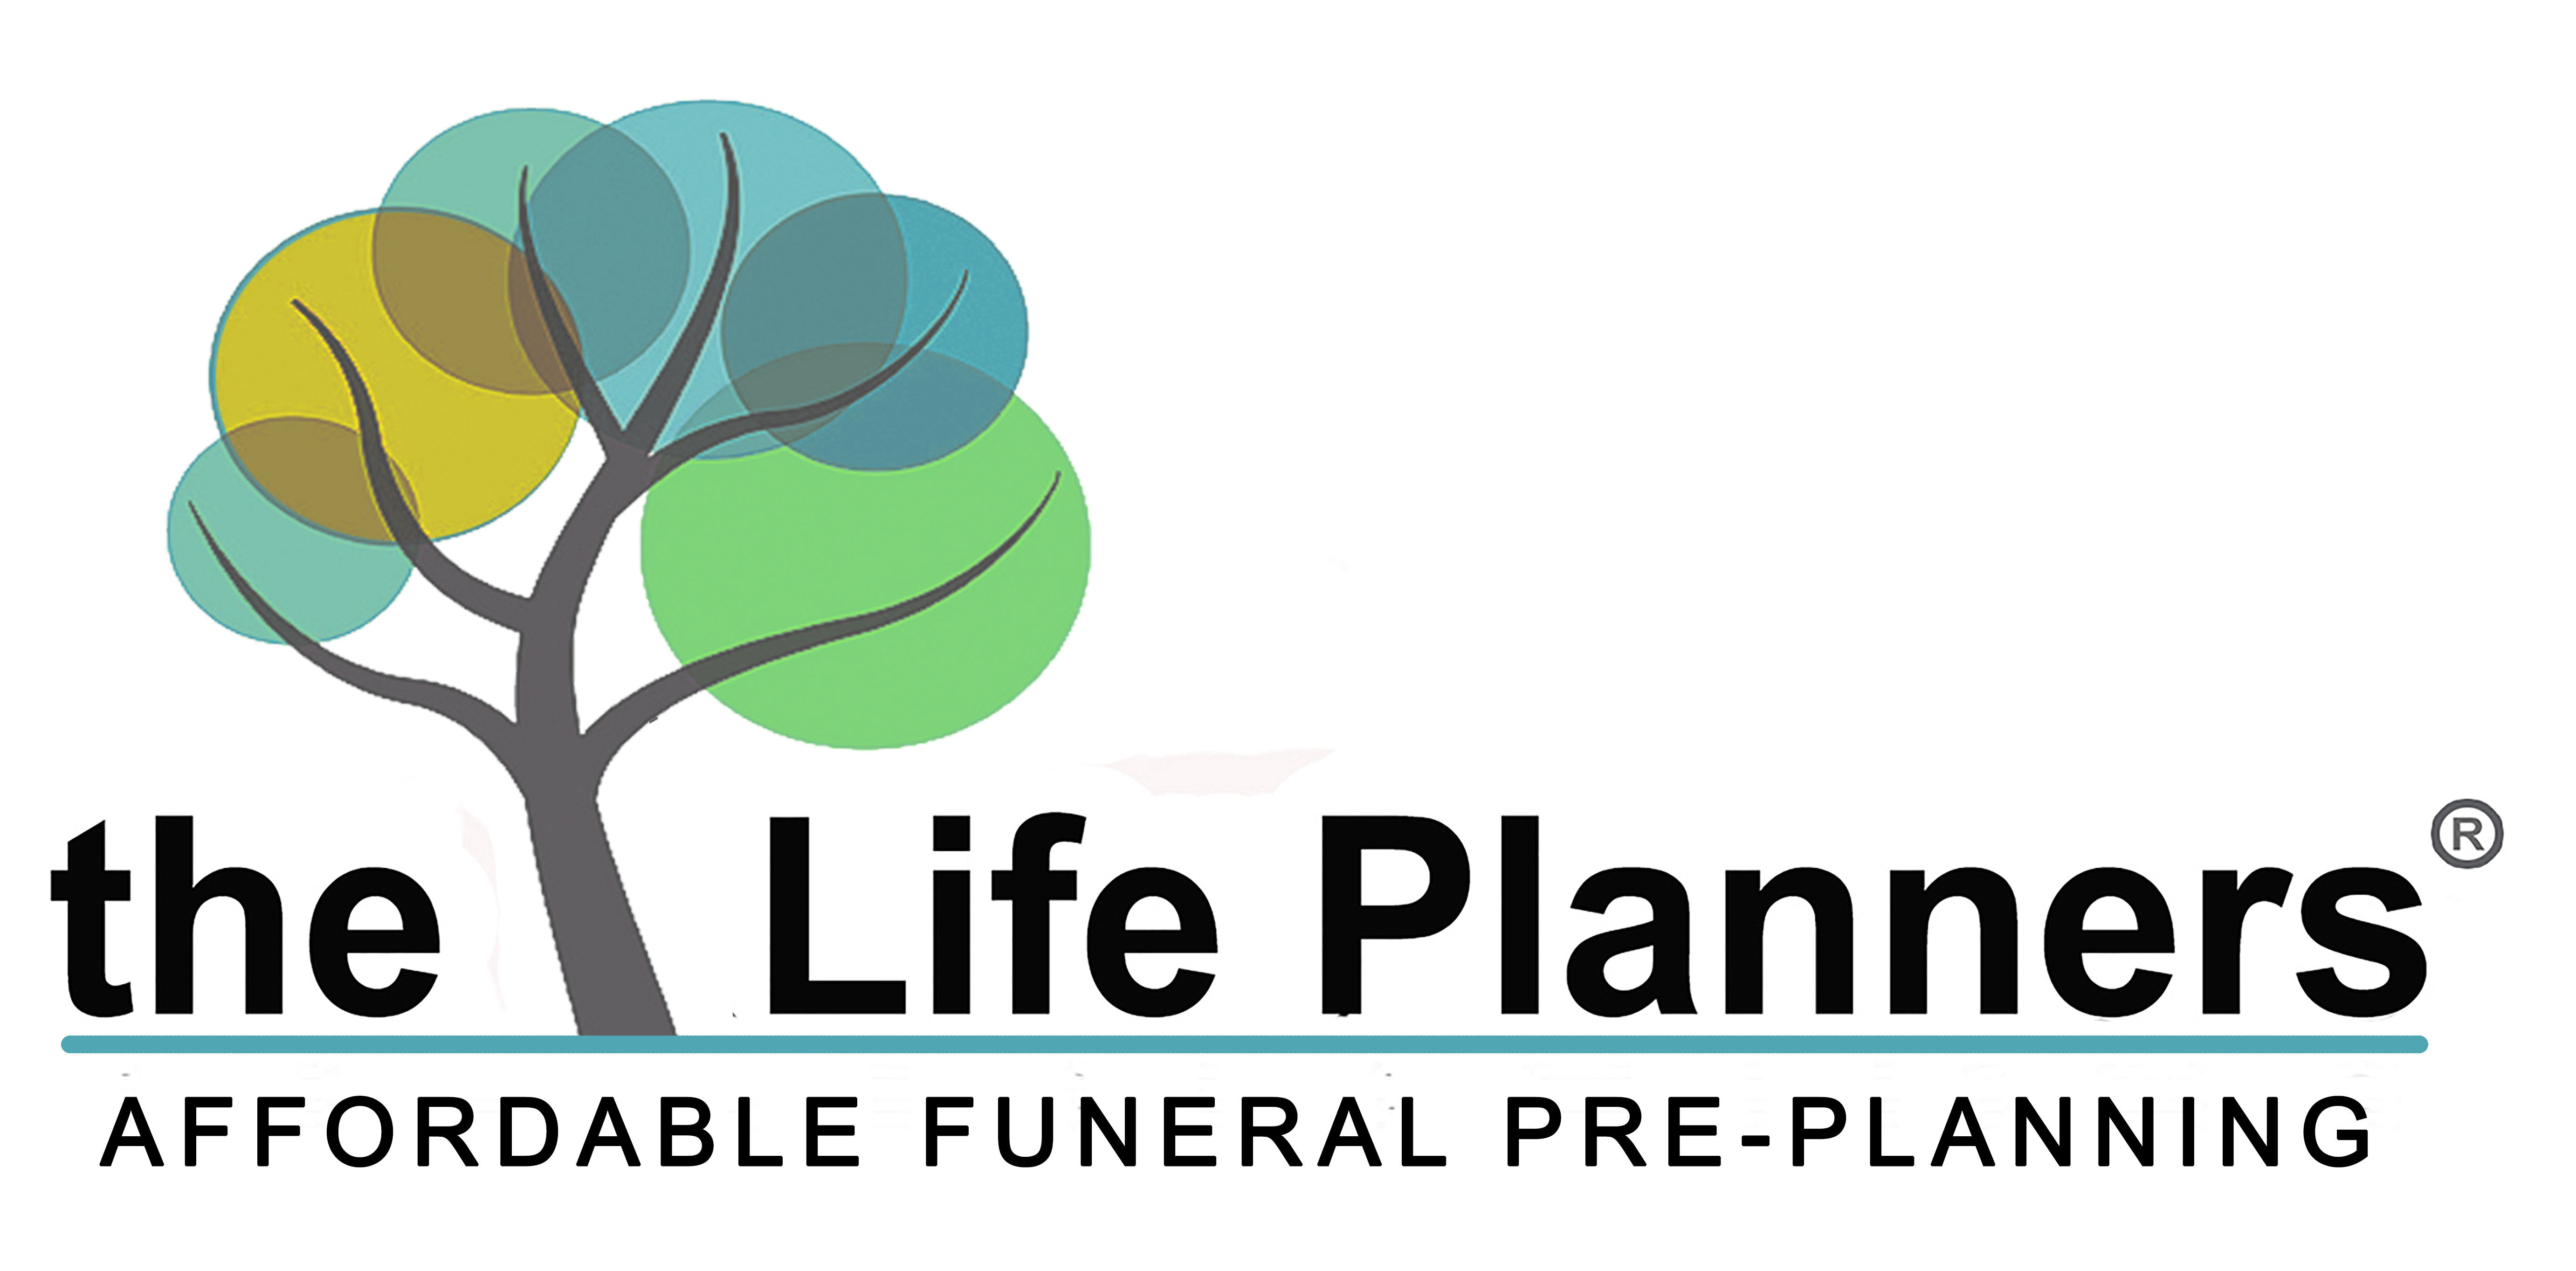 The Life Planners